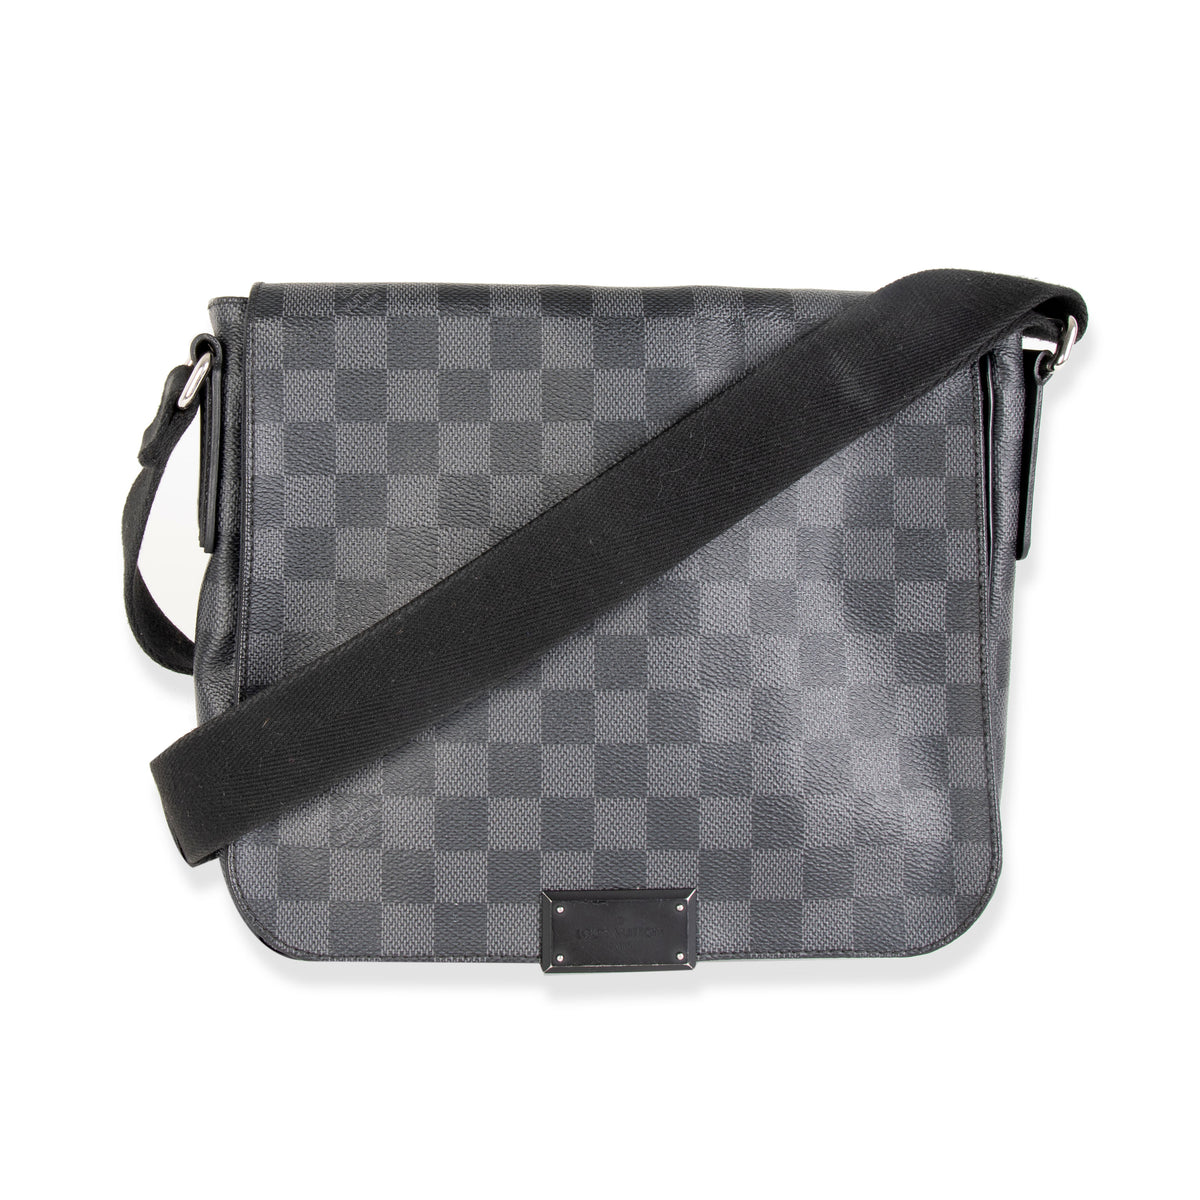 Louis Vuitton Damier Graphite District PM Messenger Bag